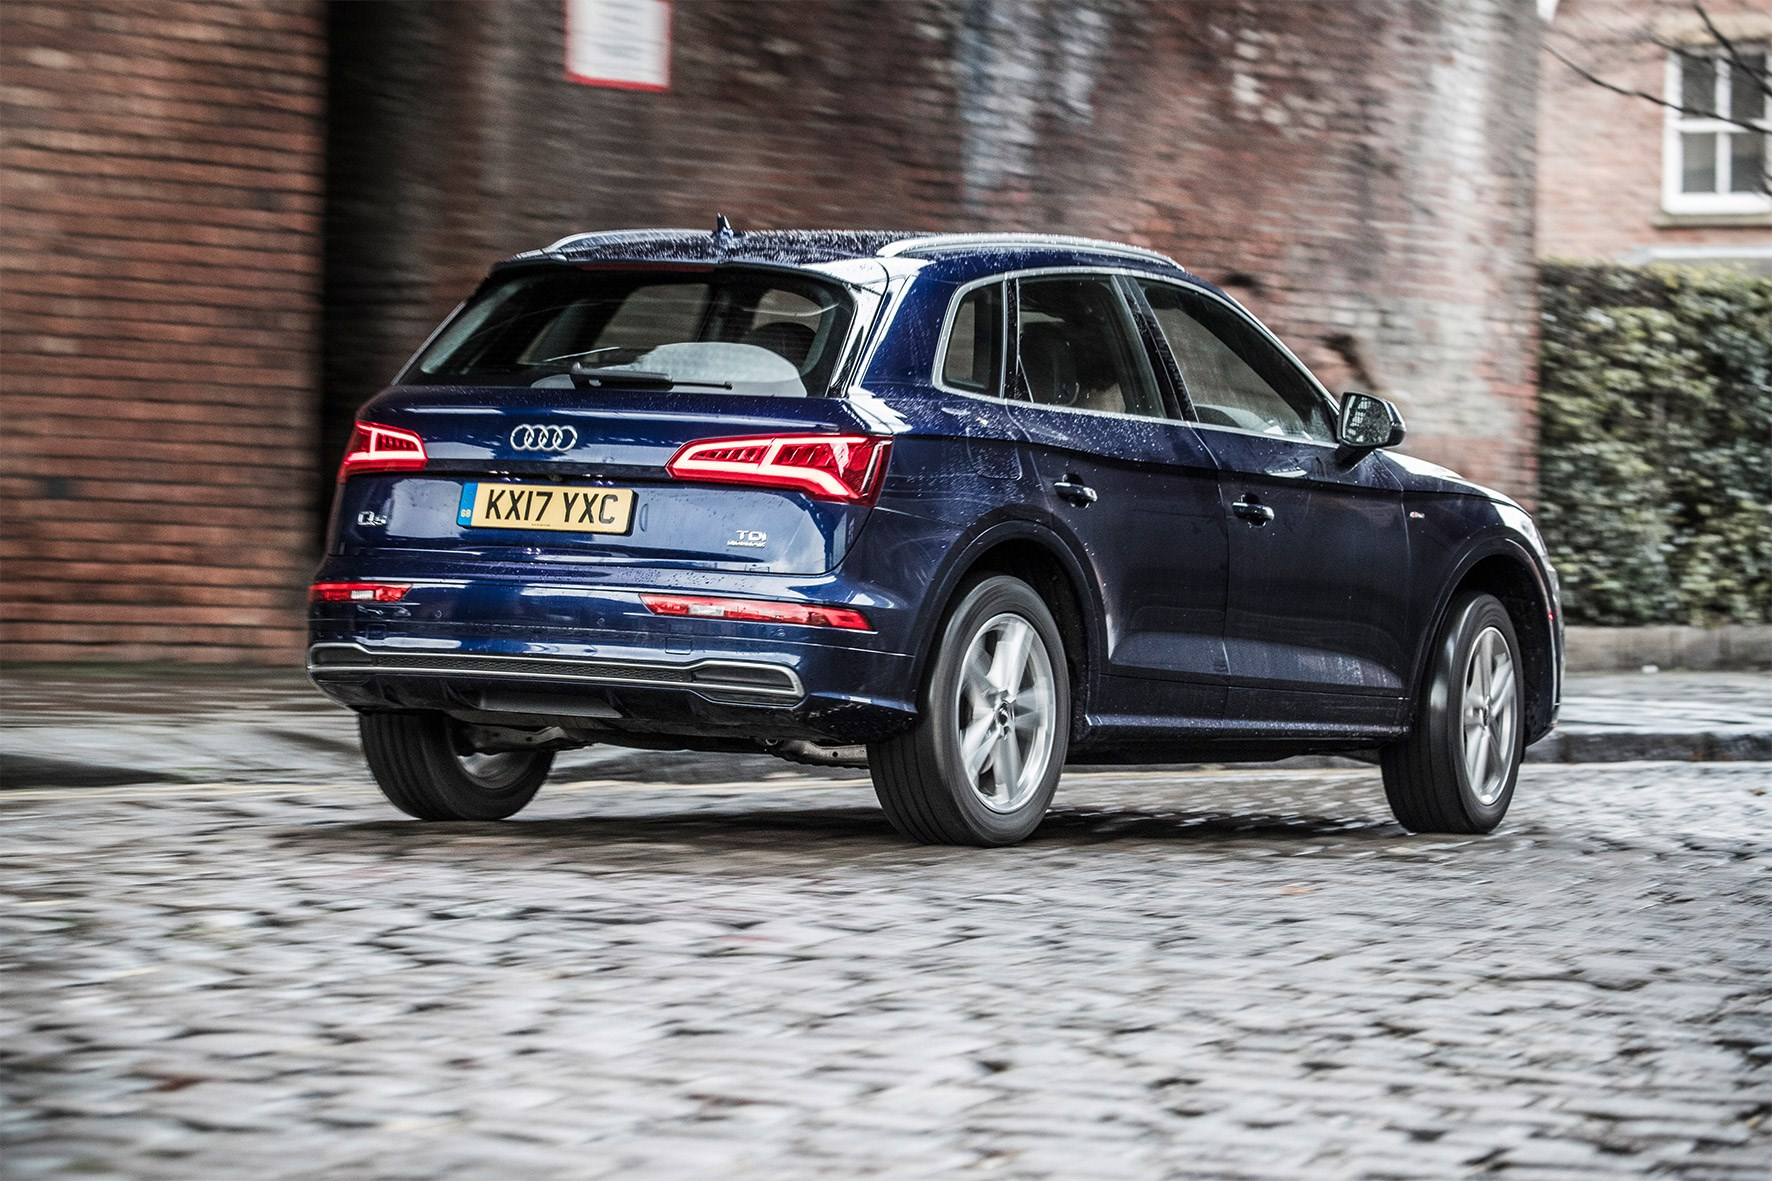 The Audi Q5 Looks So Much Stronger Than Merc Glc And Can Shame Even Nicely Wrought Bmw X3